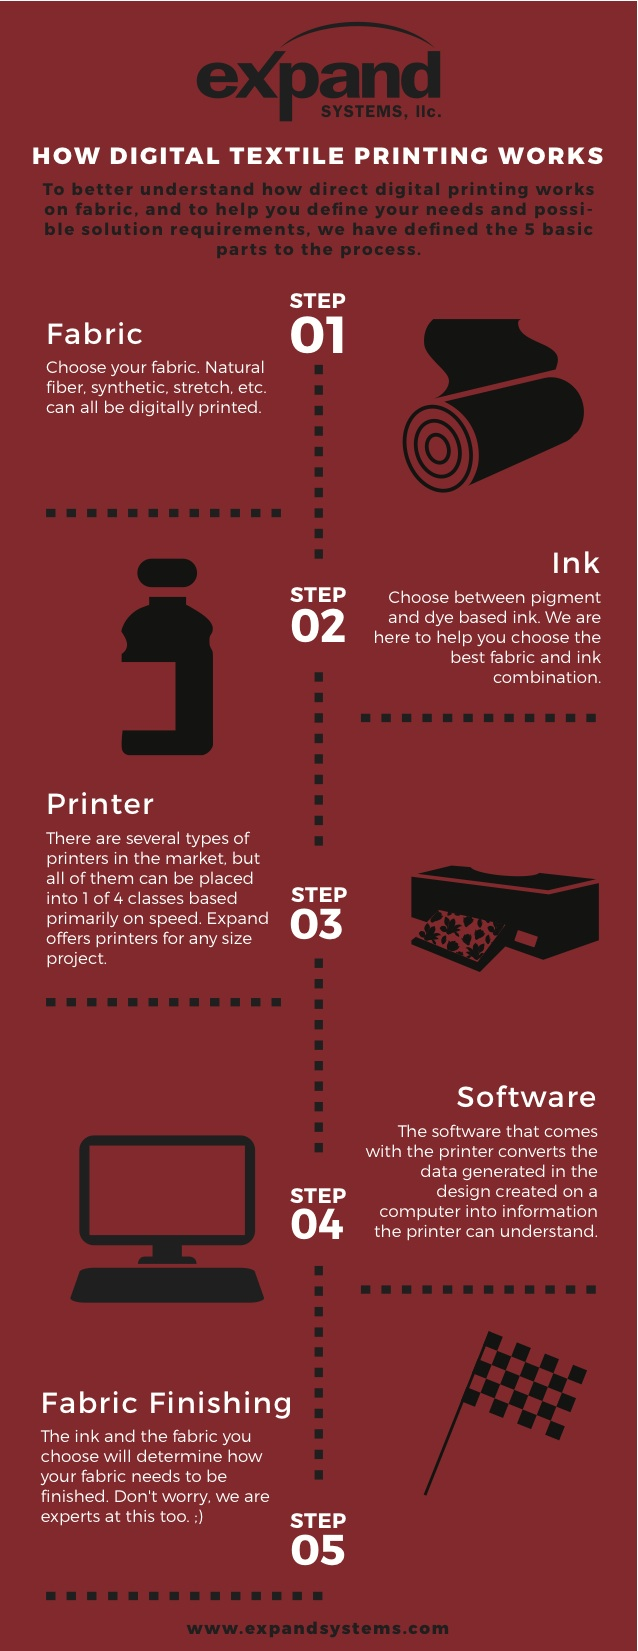 Expand Systems   Digital Textile Solutions Provider